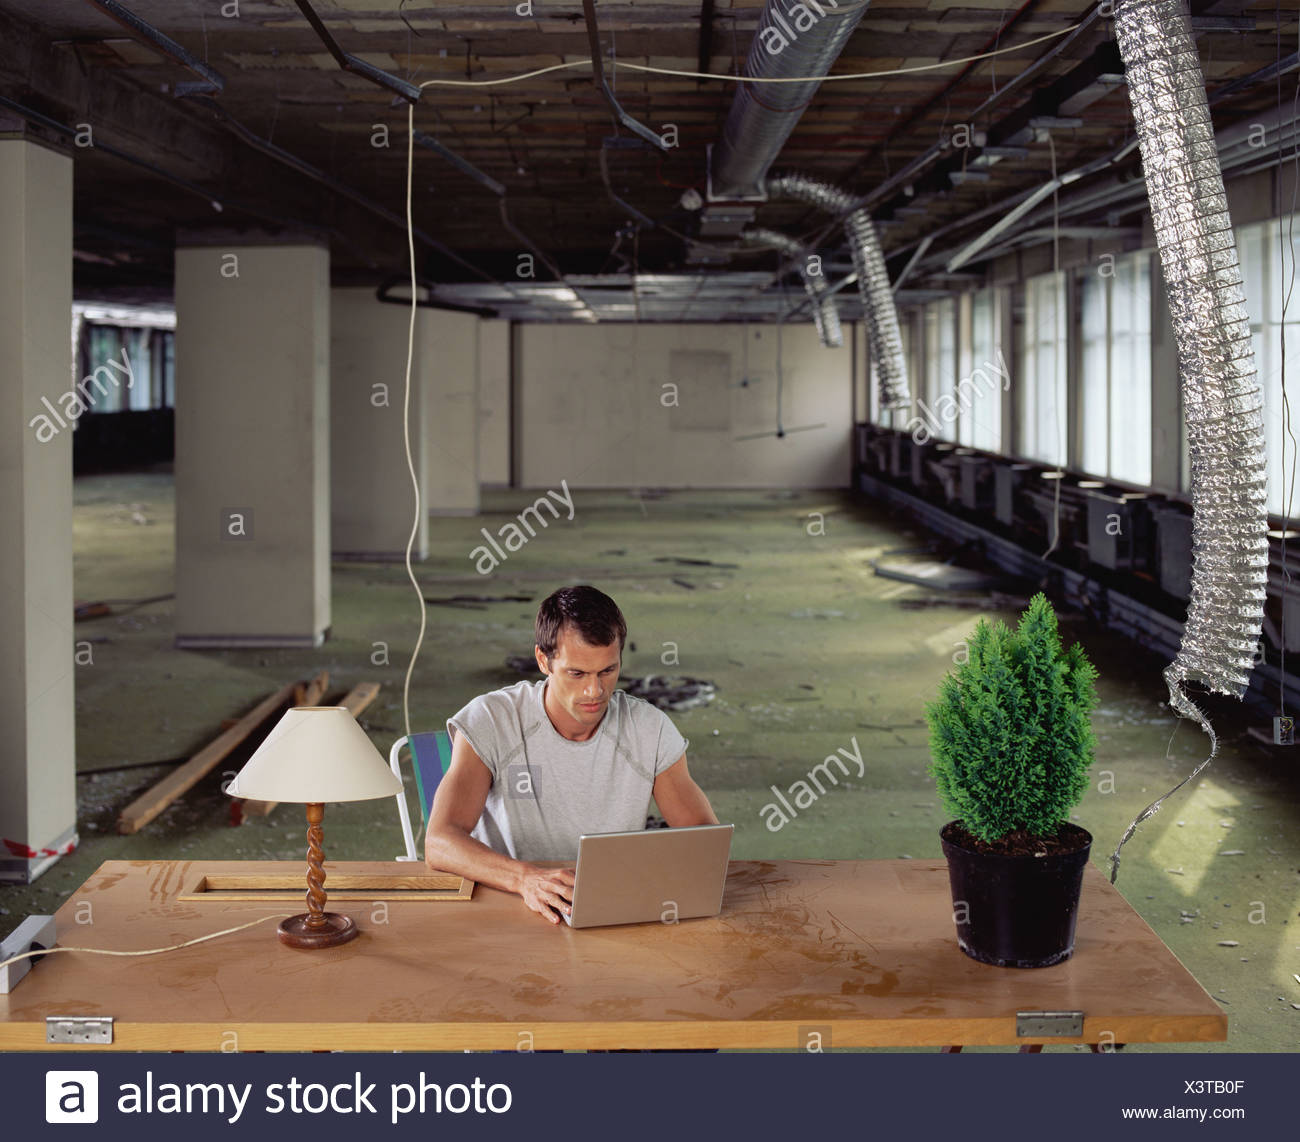 Man working alone in messy office - Stock Image